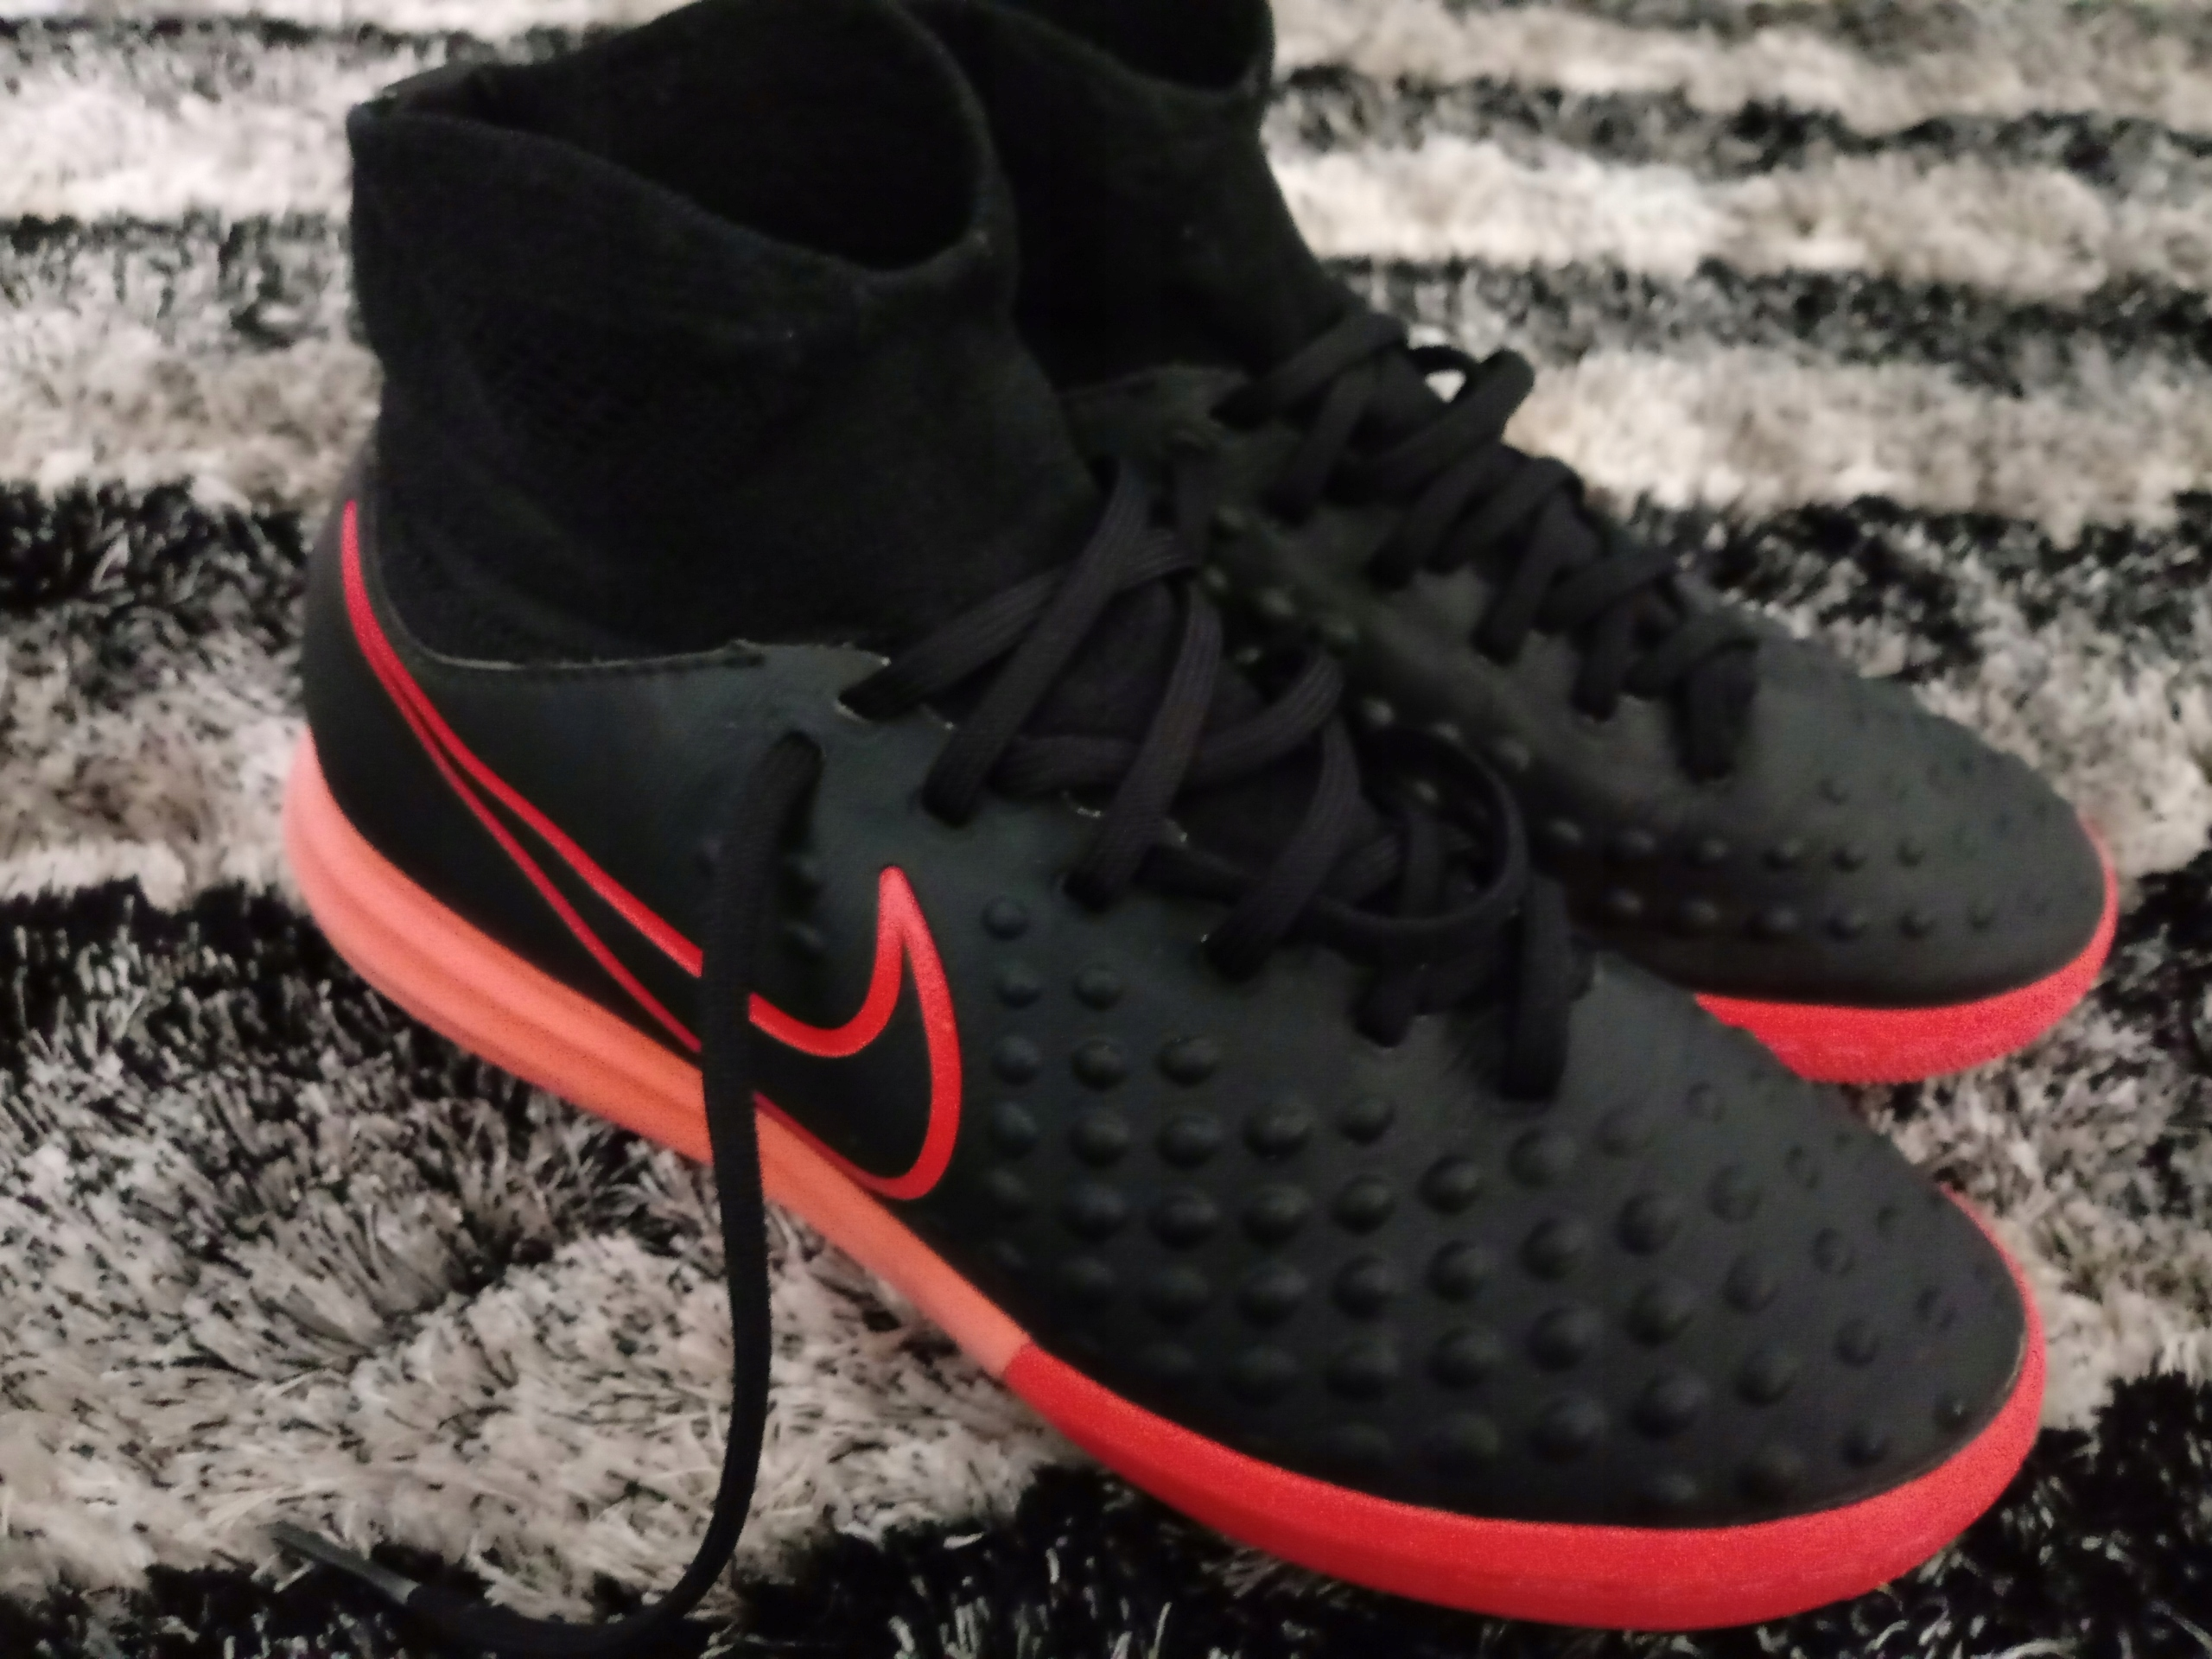 Nike Magista Opus II FG Black Red Soccer Cleats Shoes 12